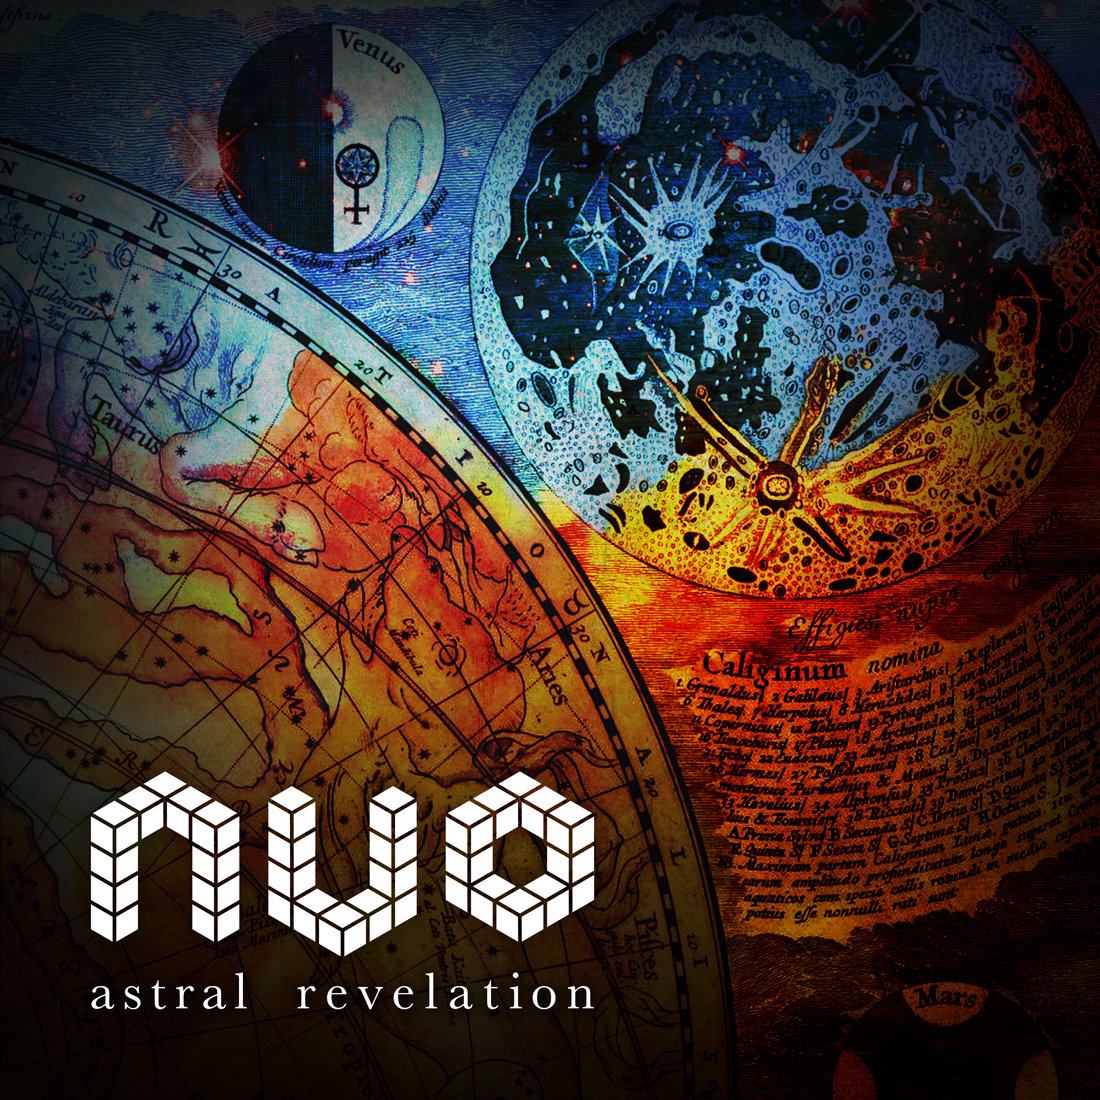 NVO - Astral Revelation (OG Krush Remix) @ 'Astral Revelation' album (deep house, electro house)